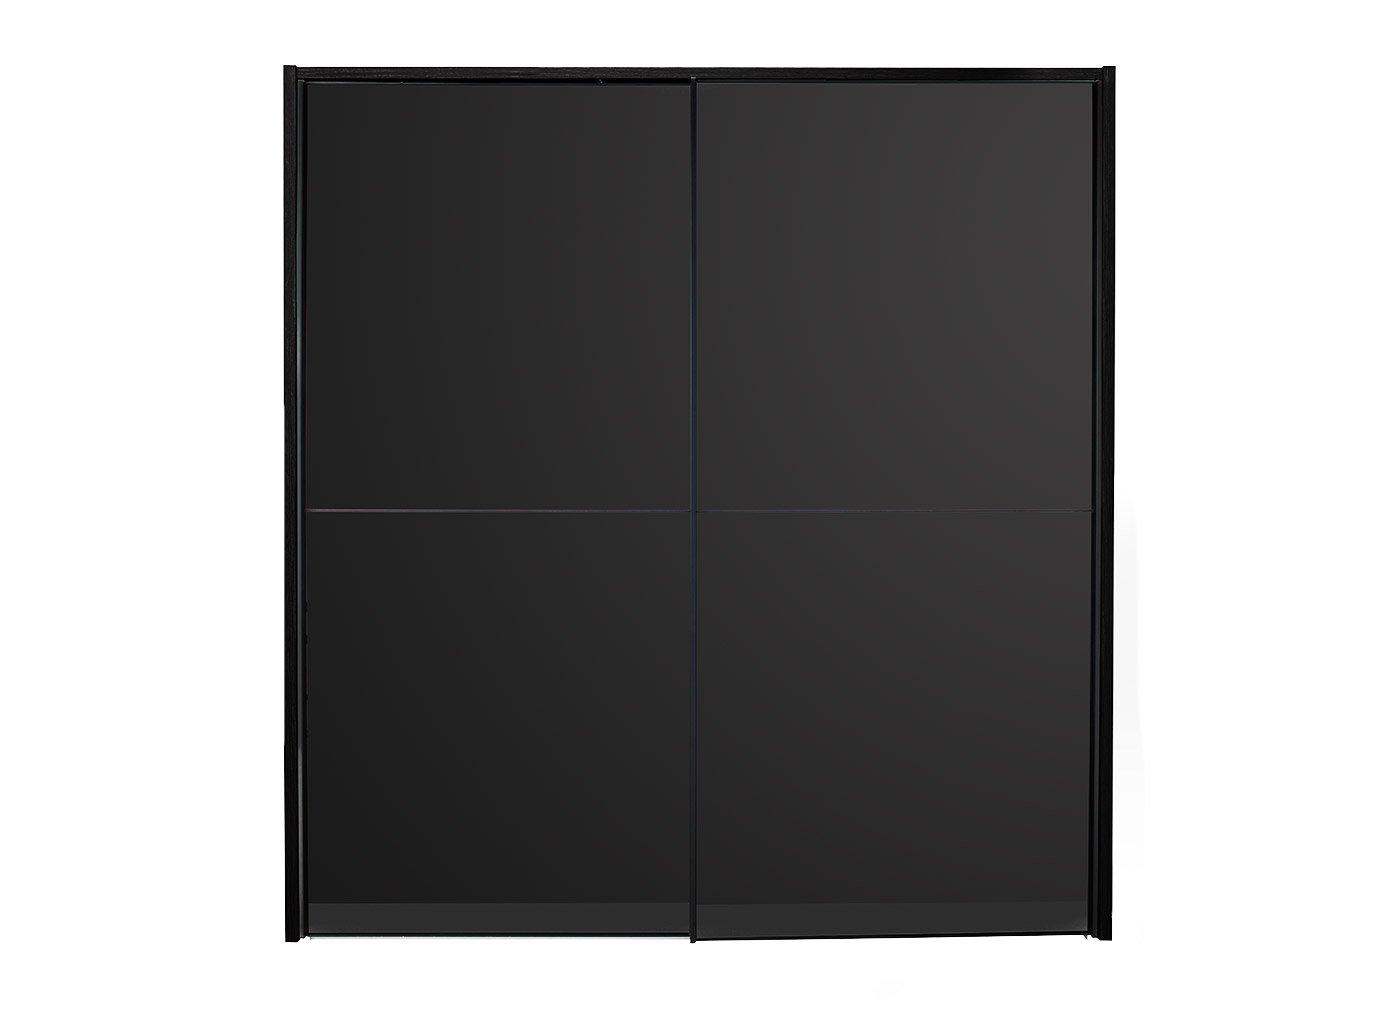 Trinidad 2 Door Small Sliding Wardrobe - Black